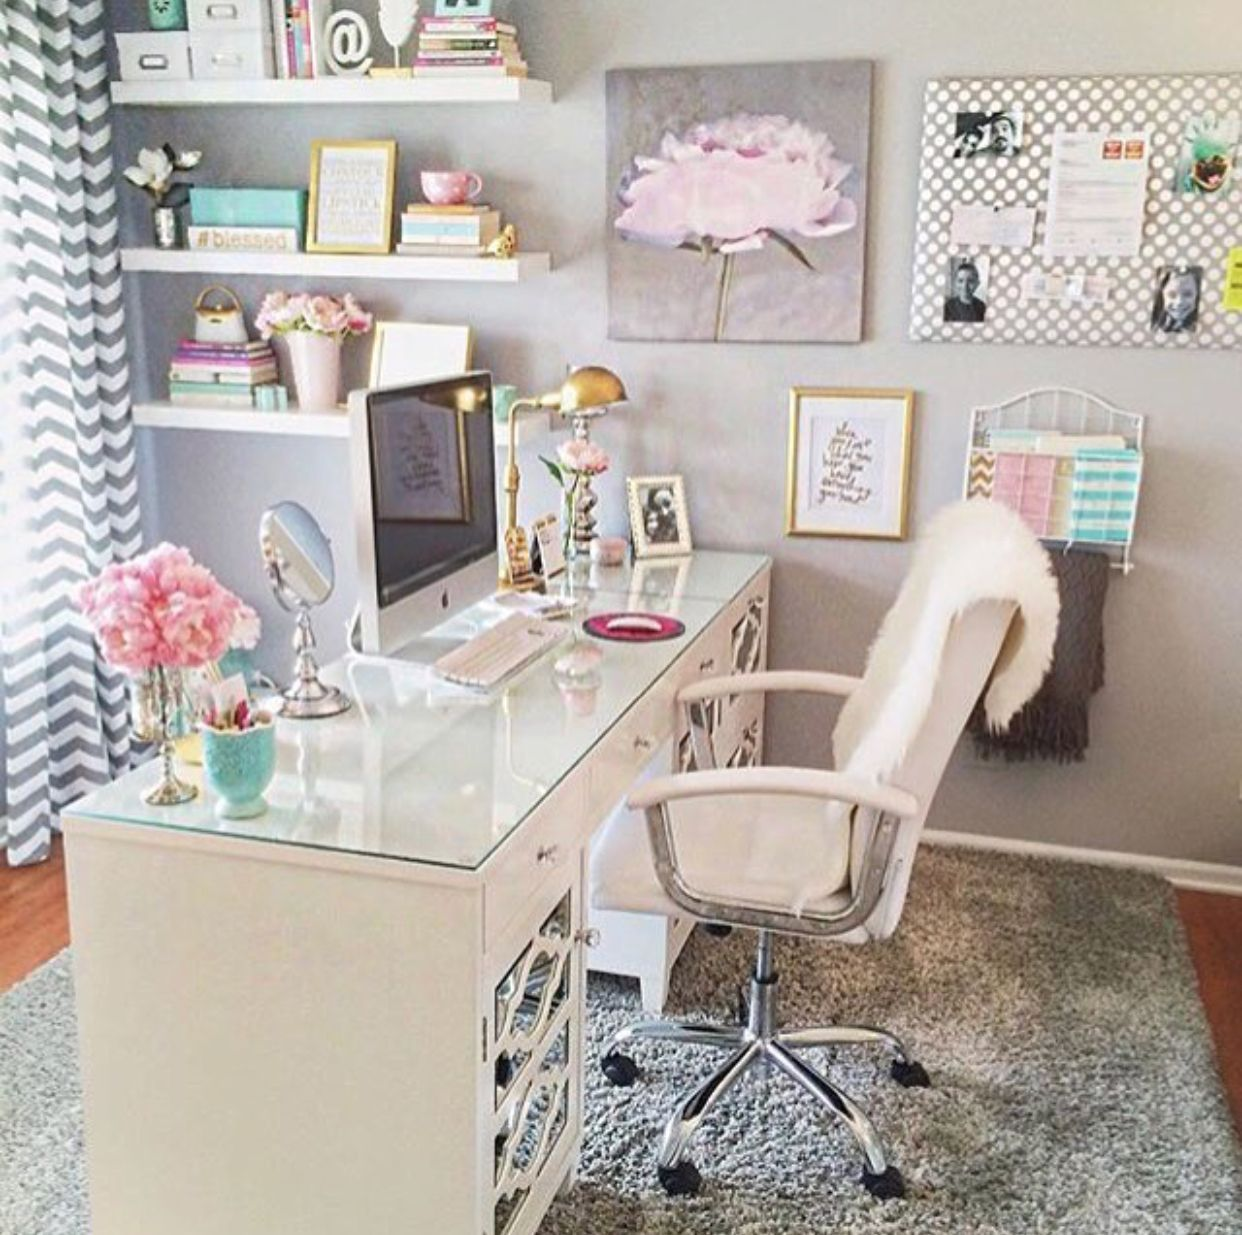 43+ Ideas Office Decor for Cubicle Professional Must Popular 2019 images